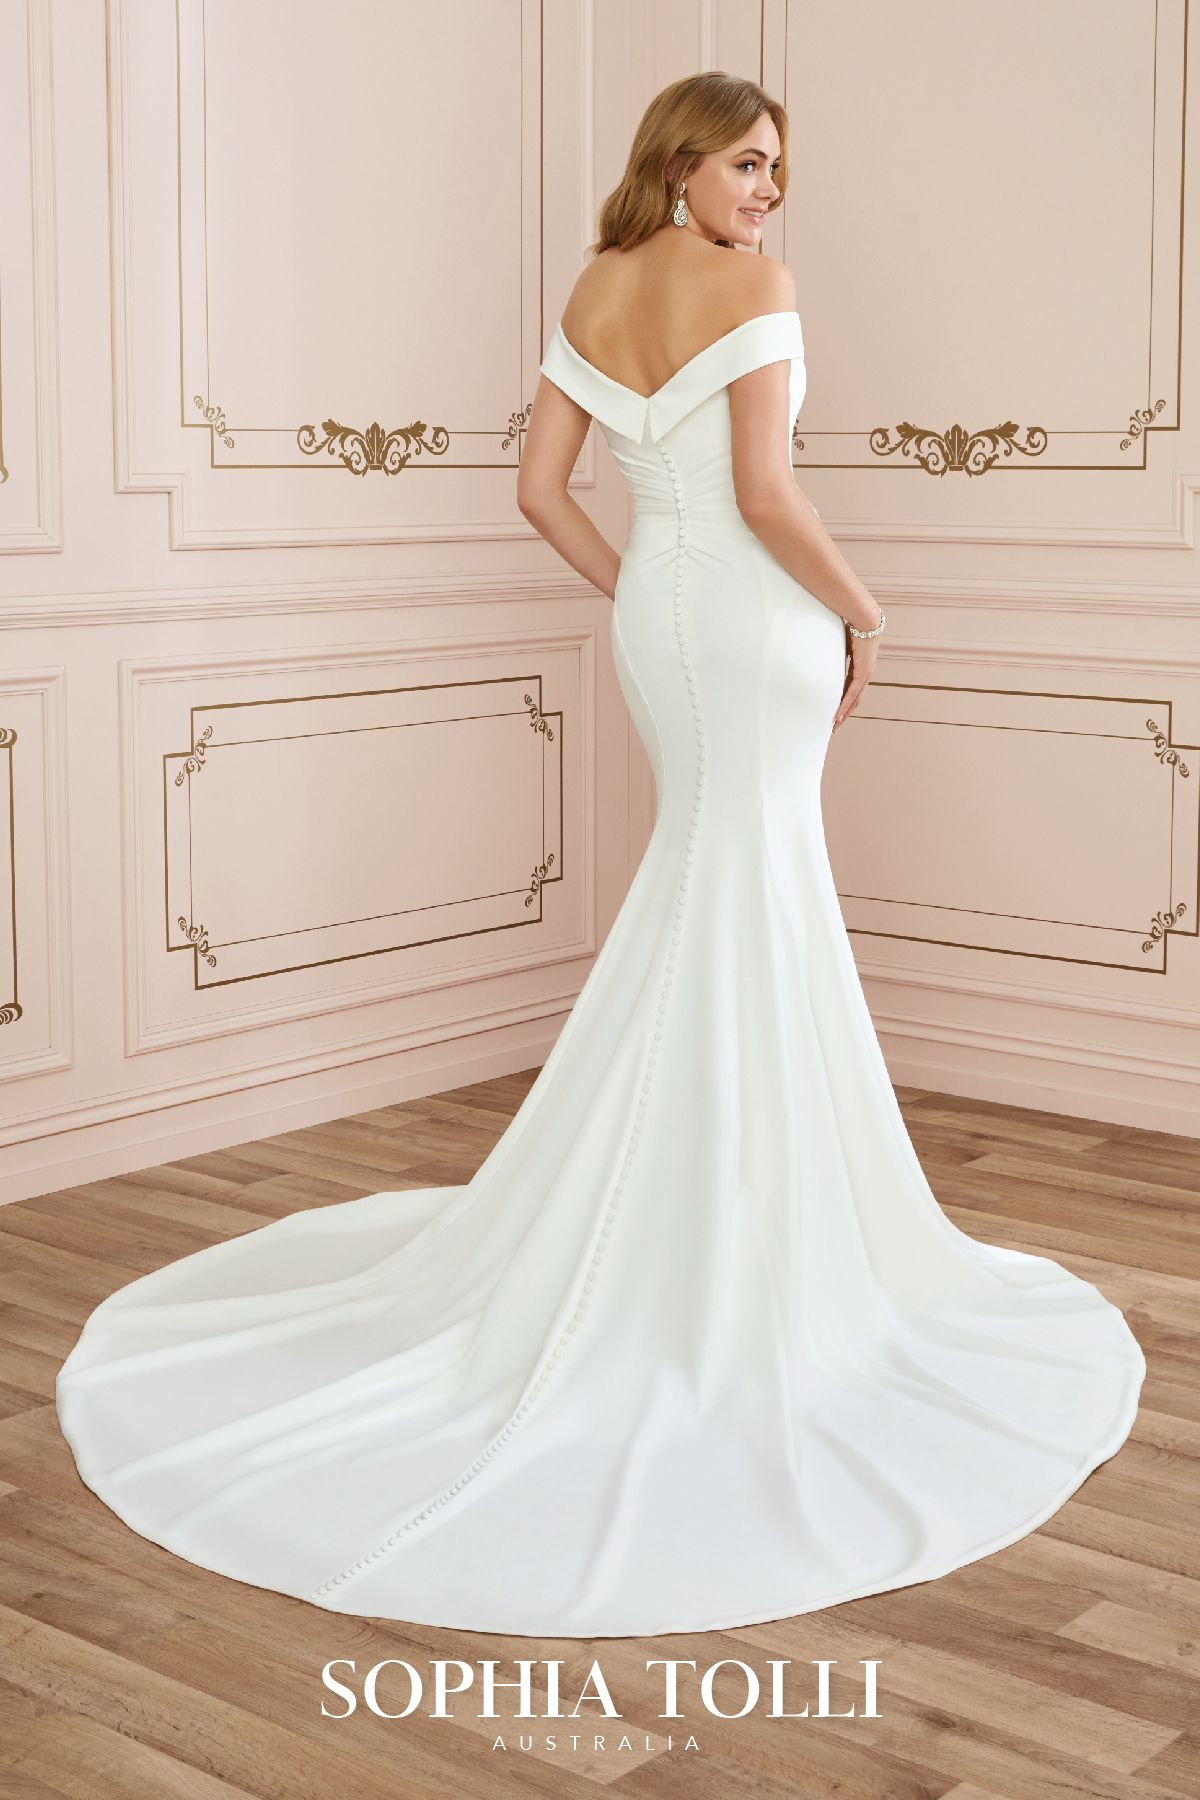 Emma Style Y22045 Sophia Tolli Fit And Flare Wedding Dress Petite Wedding Dress Mermaid Style Wedding Dress [ 1800 x 1200 Pixel ]